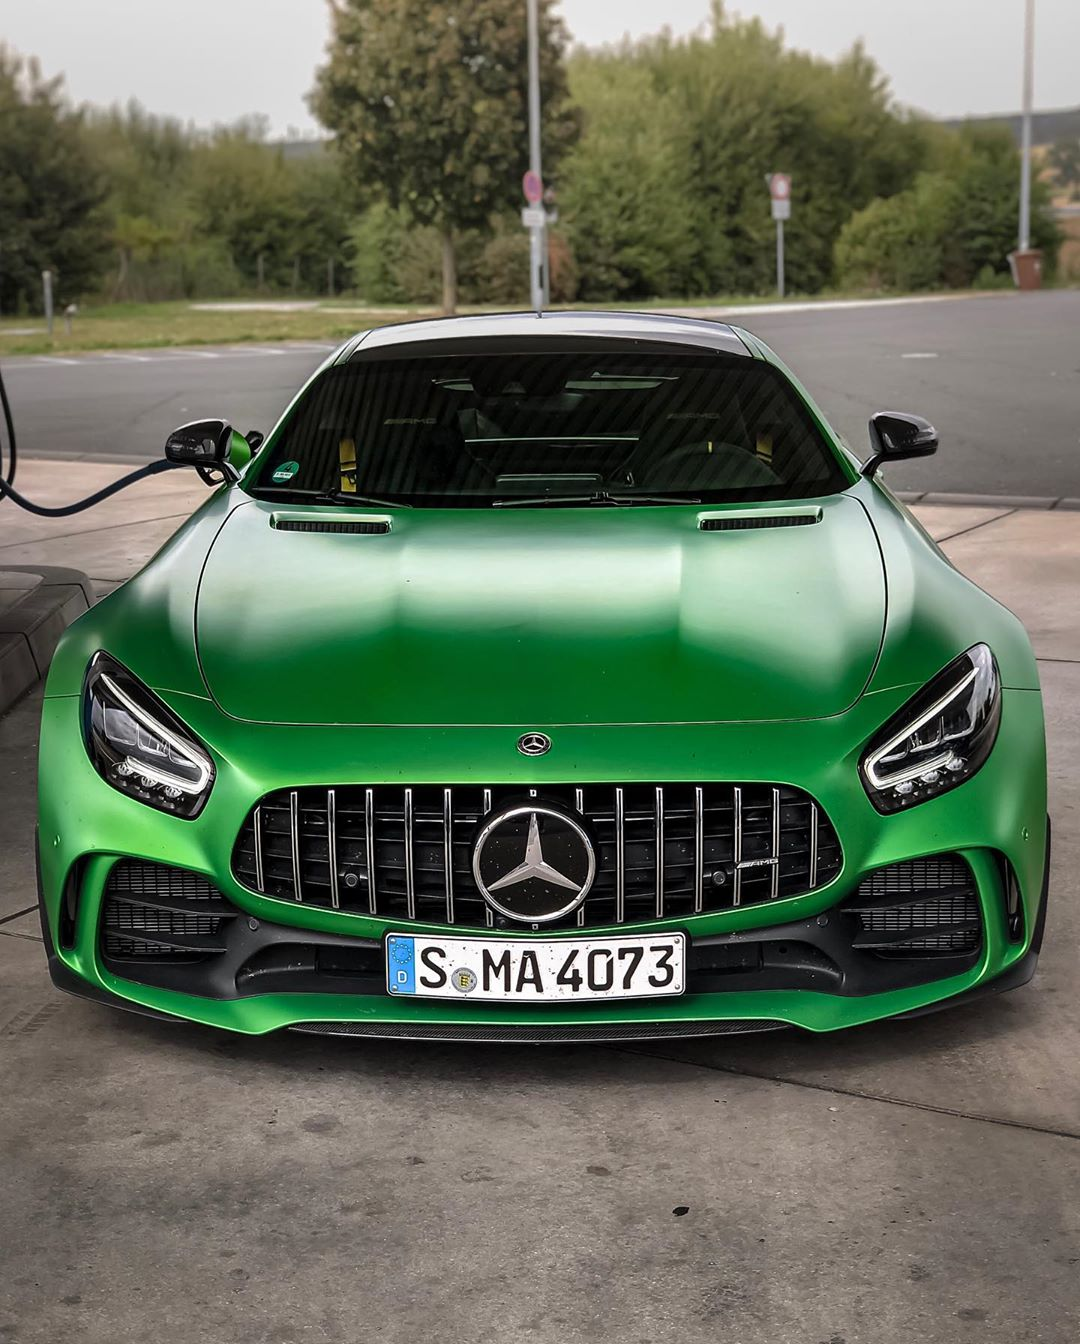 6.3 sec. 100-200 km/h💨…this thing got balls💣…full acceleration video now out on YouTube! Link in Bio☝️ #mercedesamg #mbsocialcar #amg #amggtr #gtr #amggtrpro #amggt #greenhellmagno #greenhell #automanntv